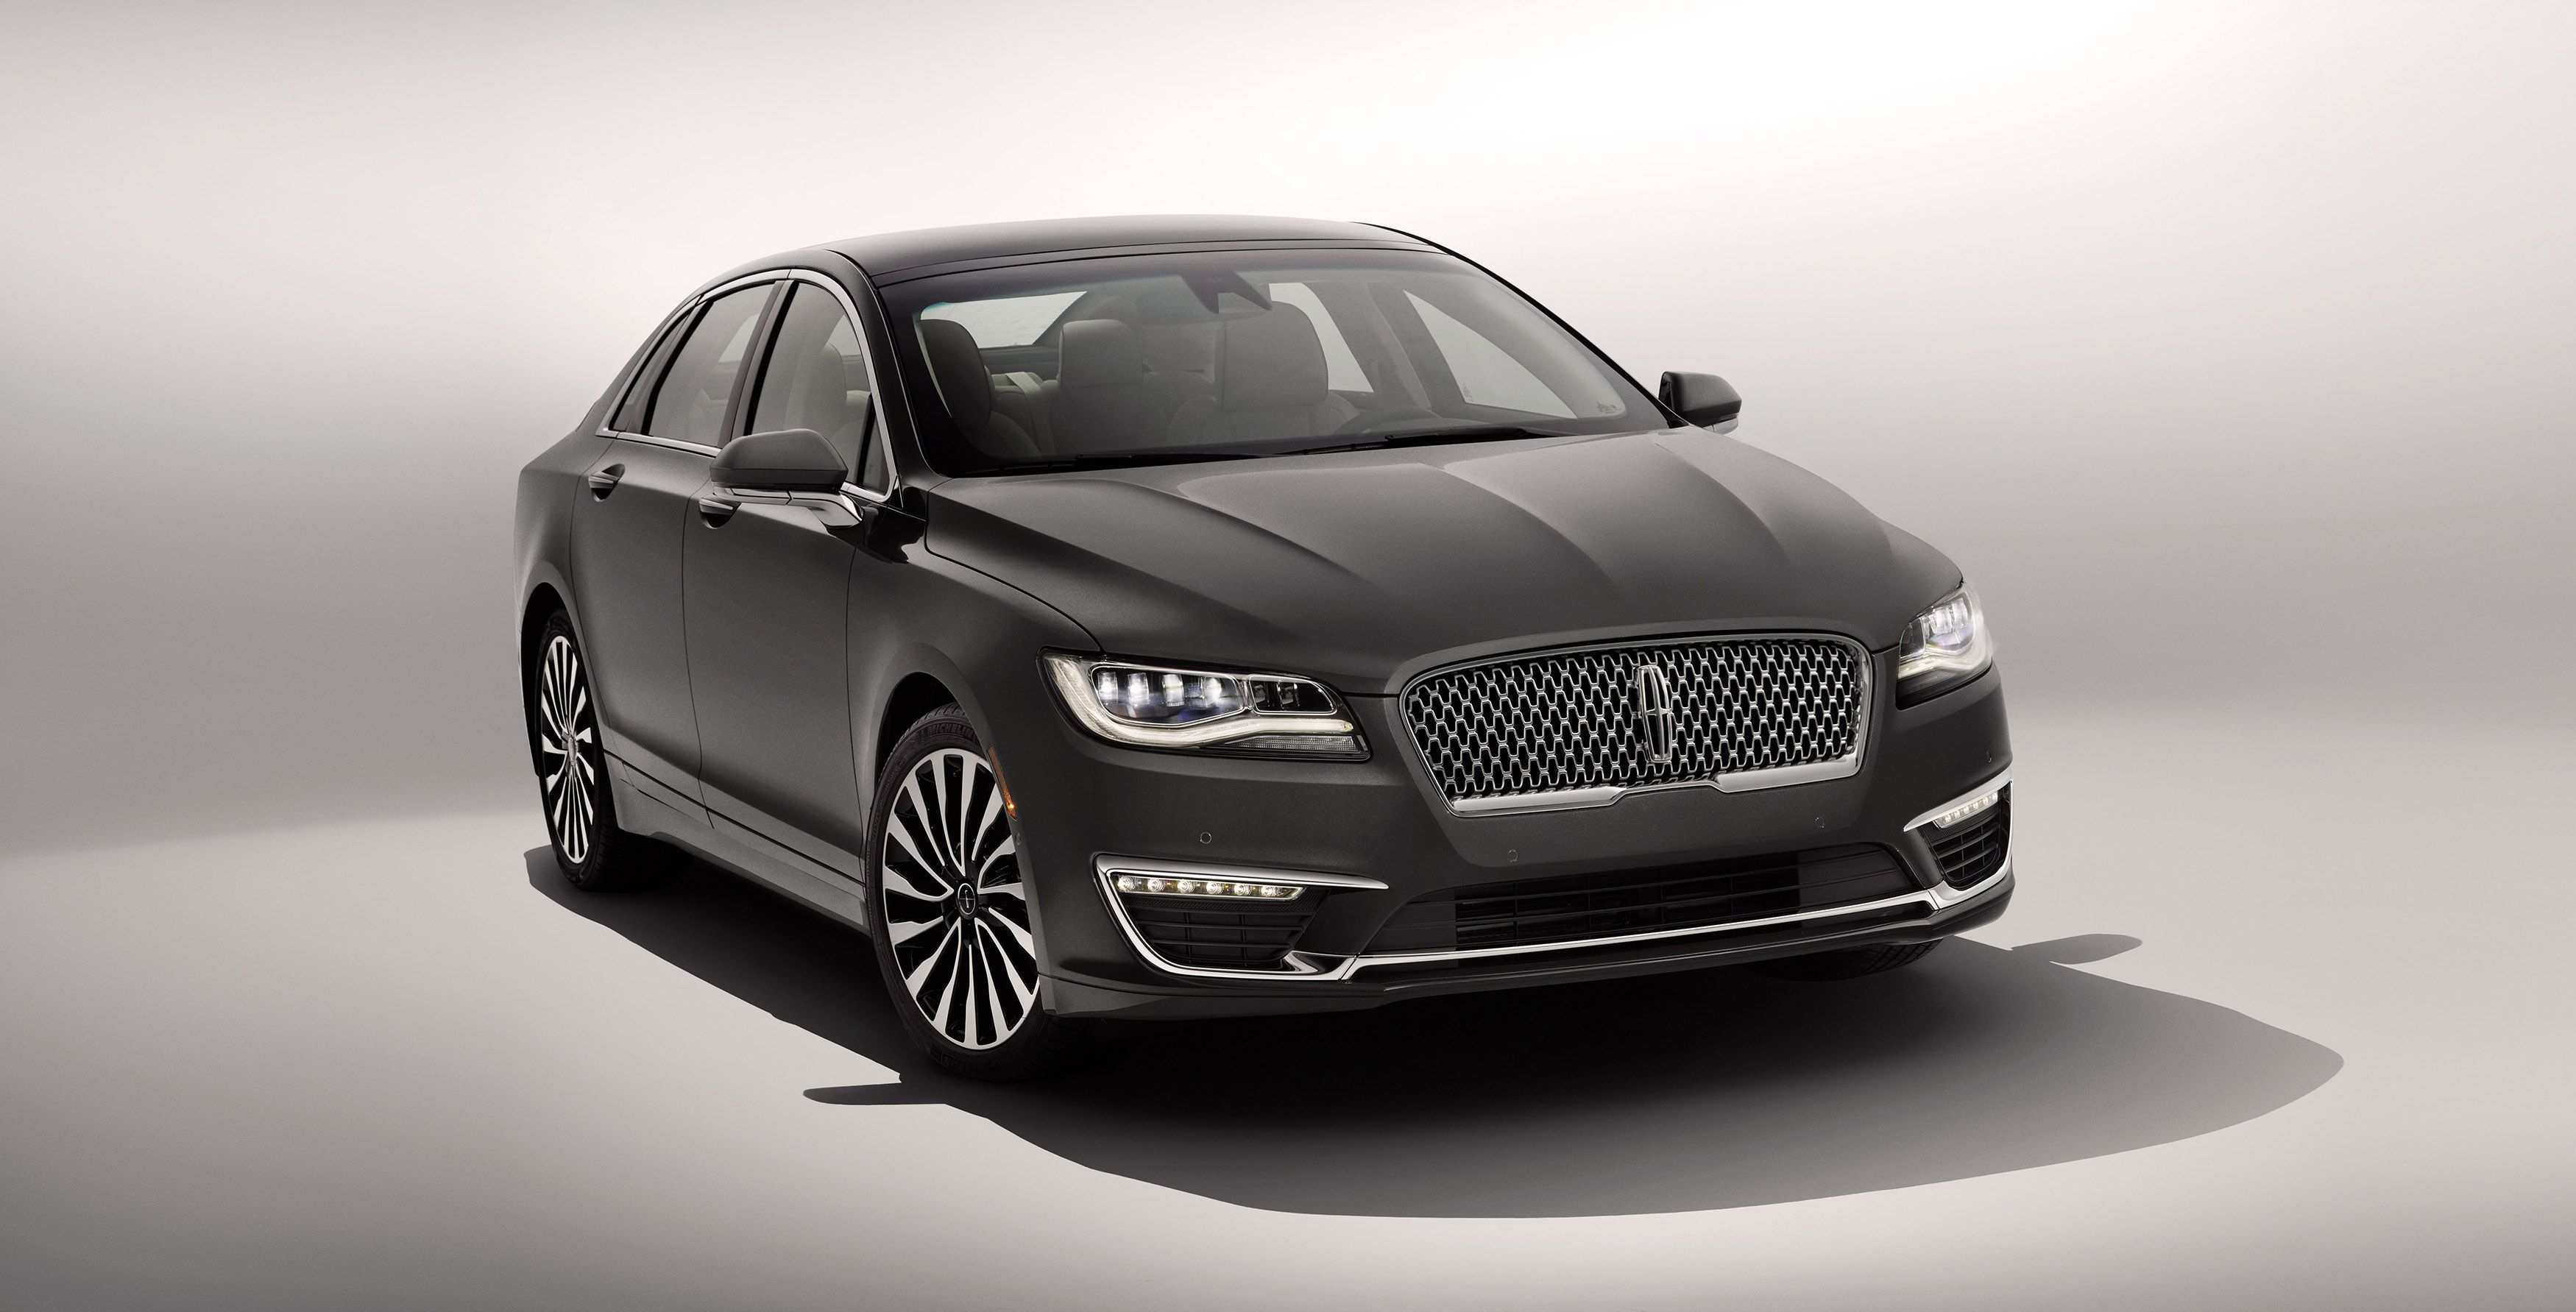 74 New 2020 Spy Shots Lincoln Mkz Sedan First Drive with 2020 Spy Shots Lincoln Mkz Sedan